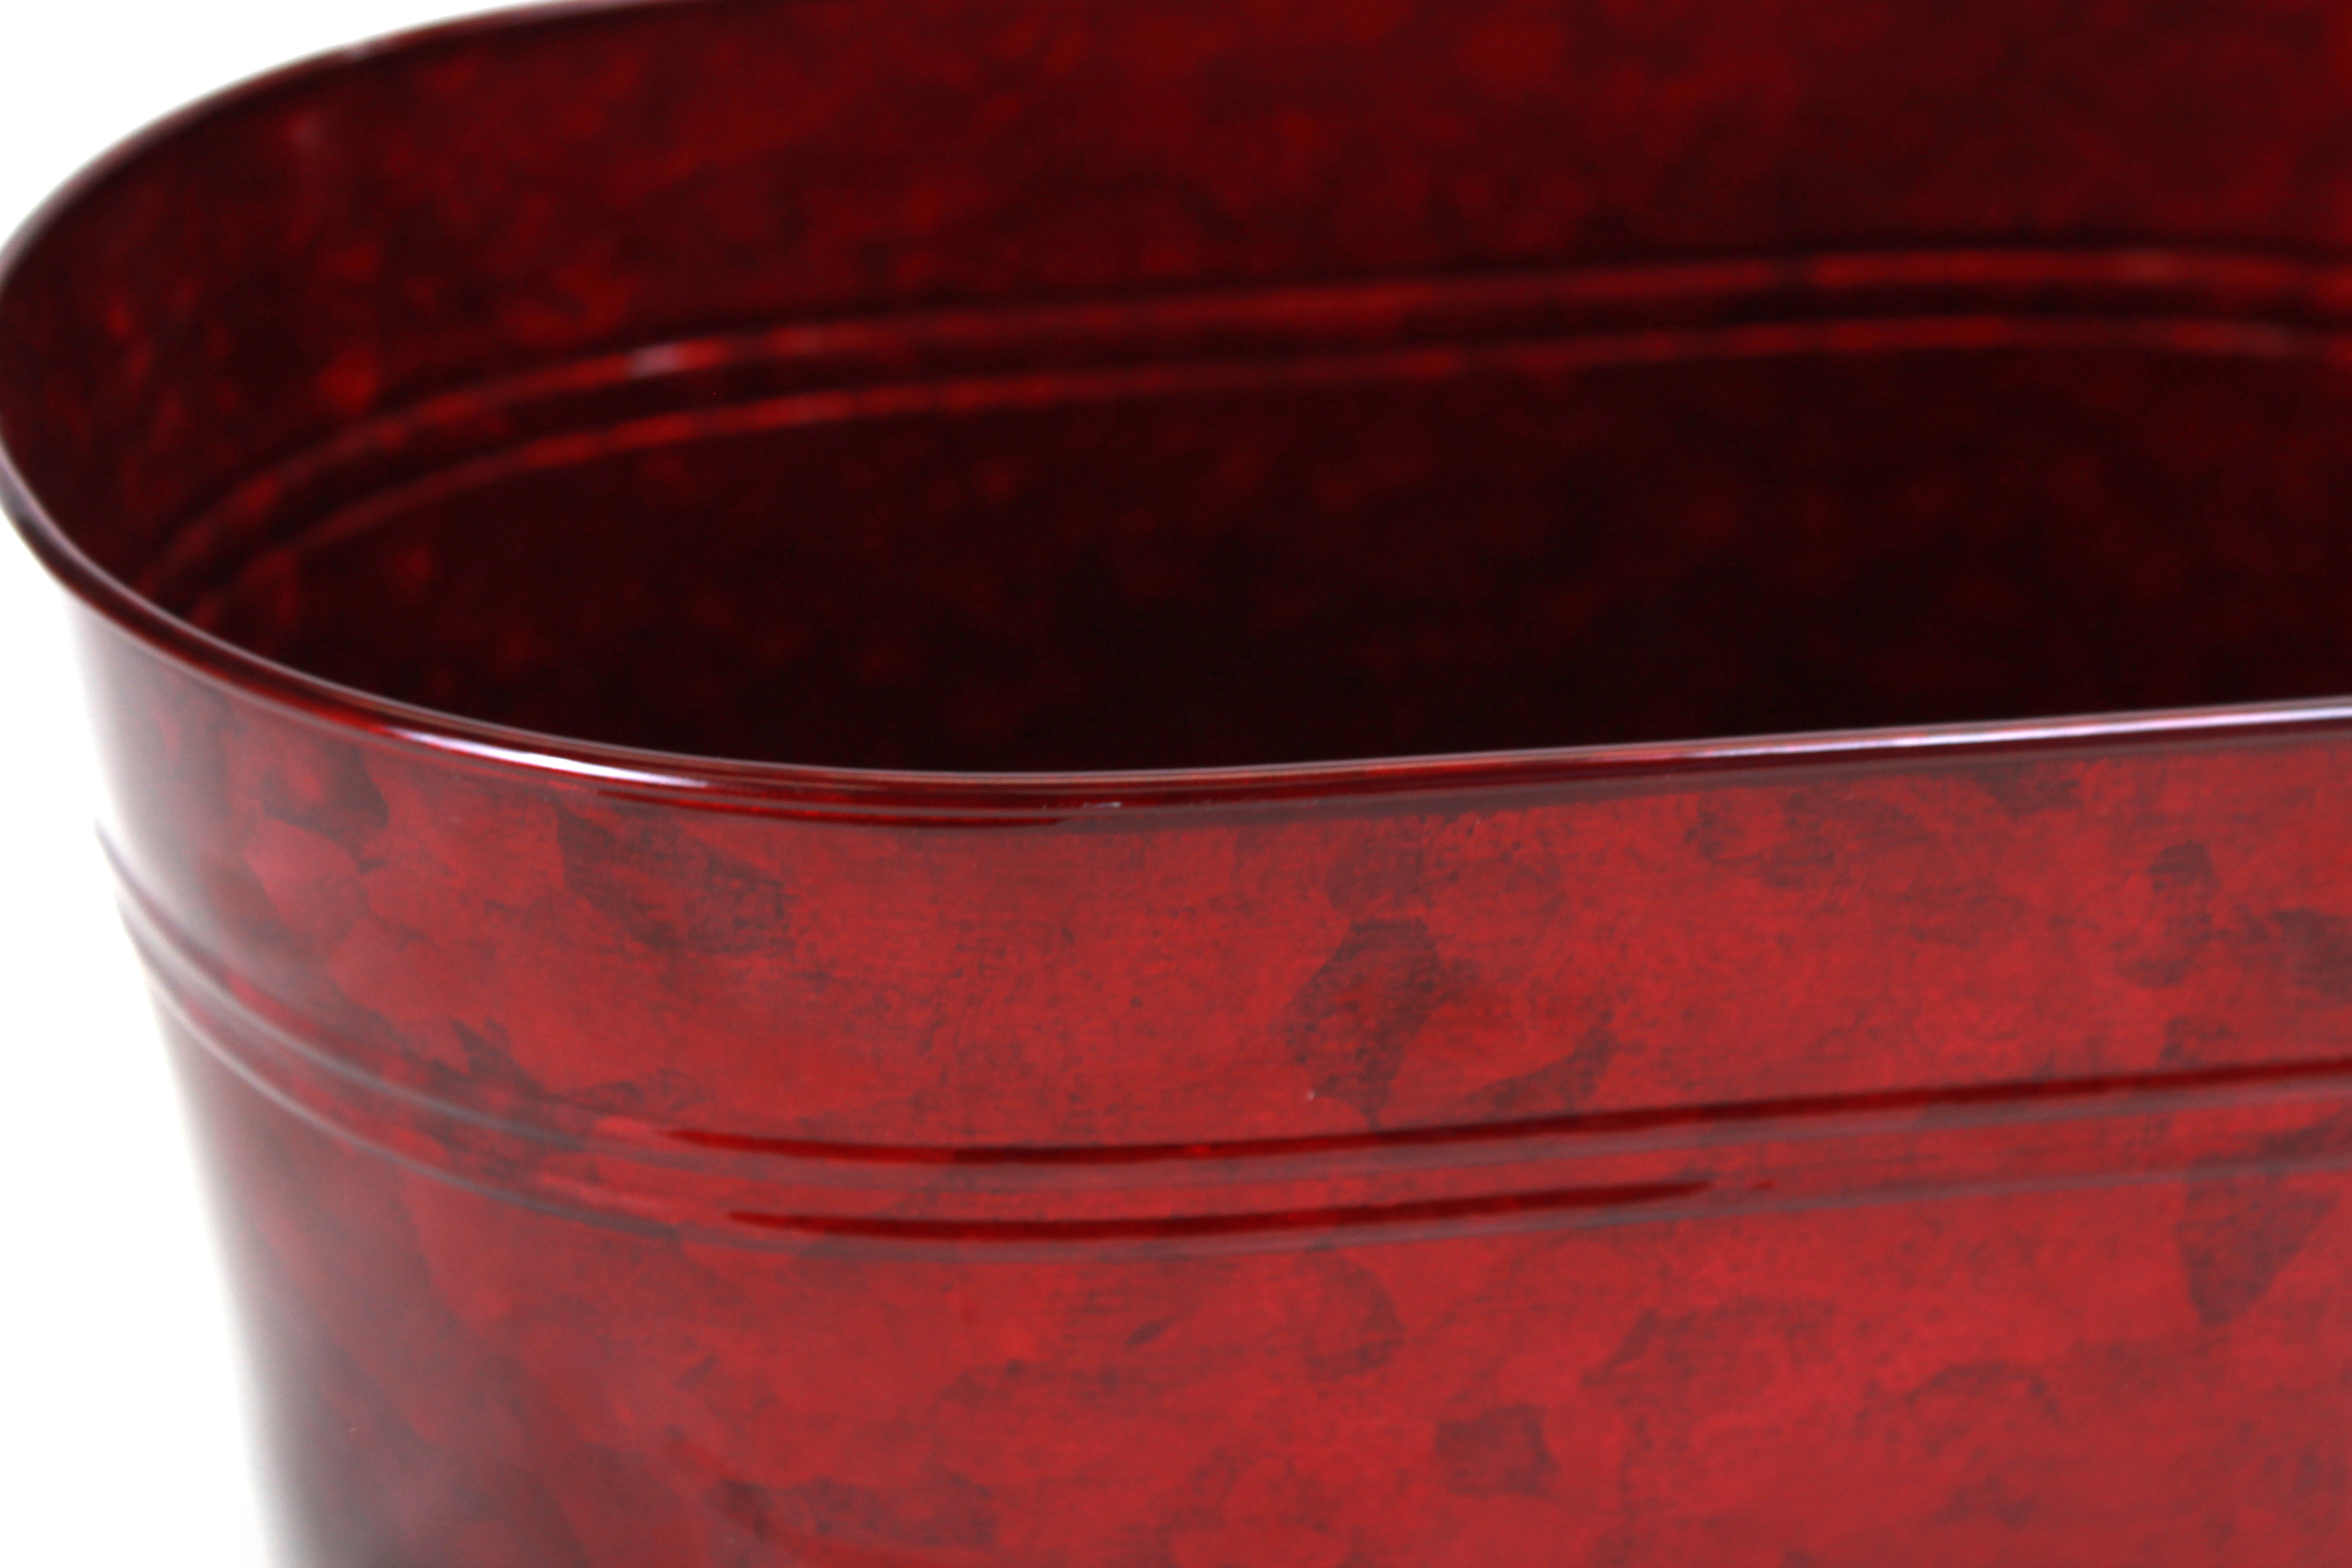 Red Oval Metal Basket close